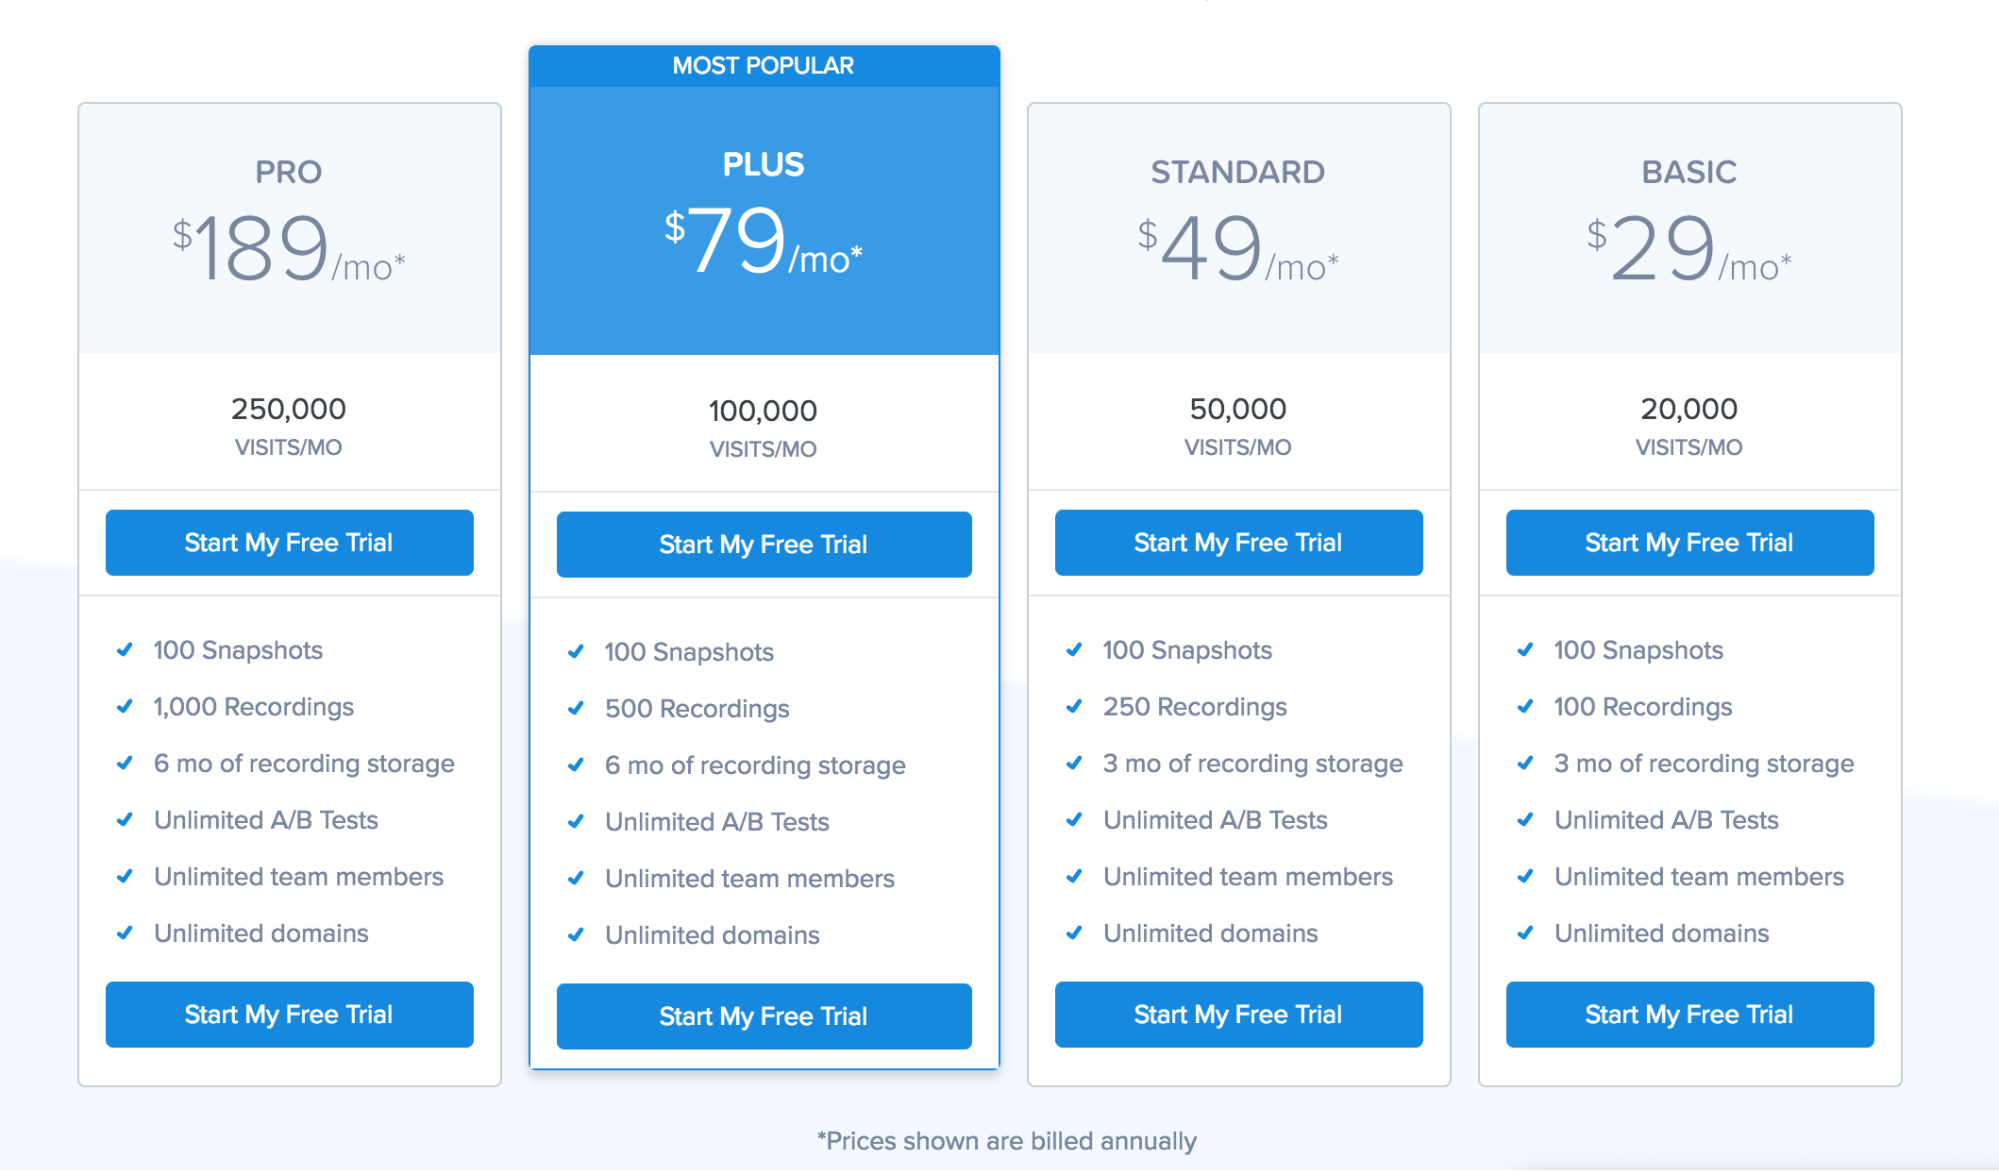 How to Develop a Pricing Strategy for Higher Conversions